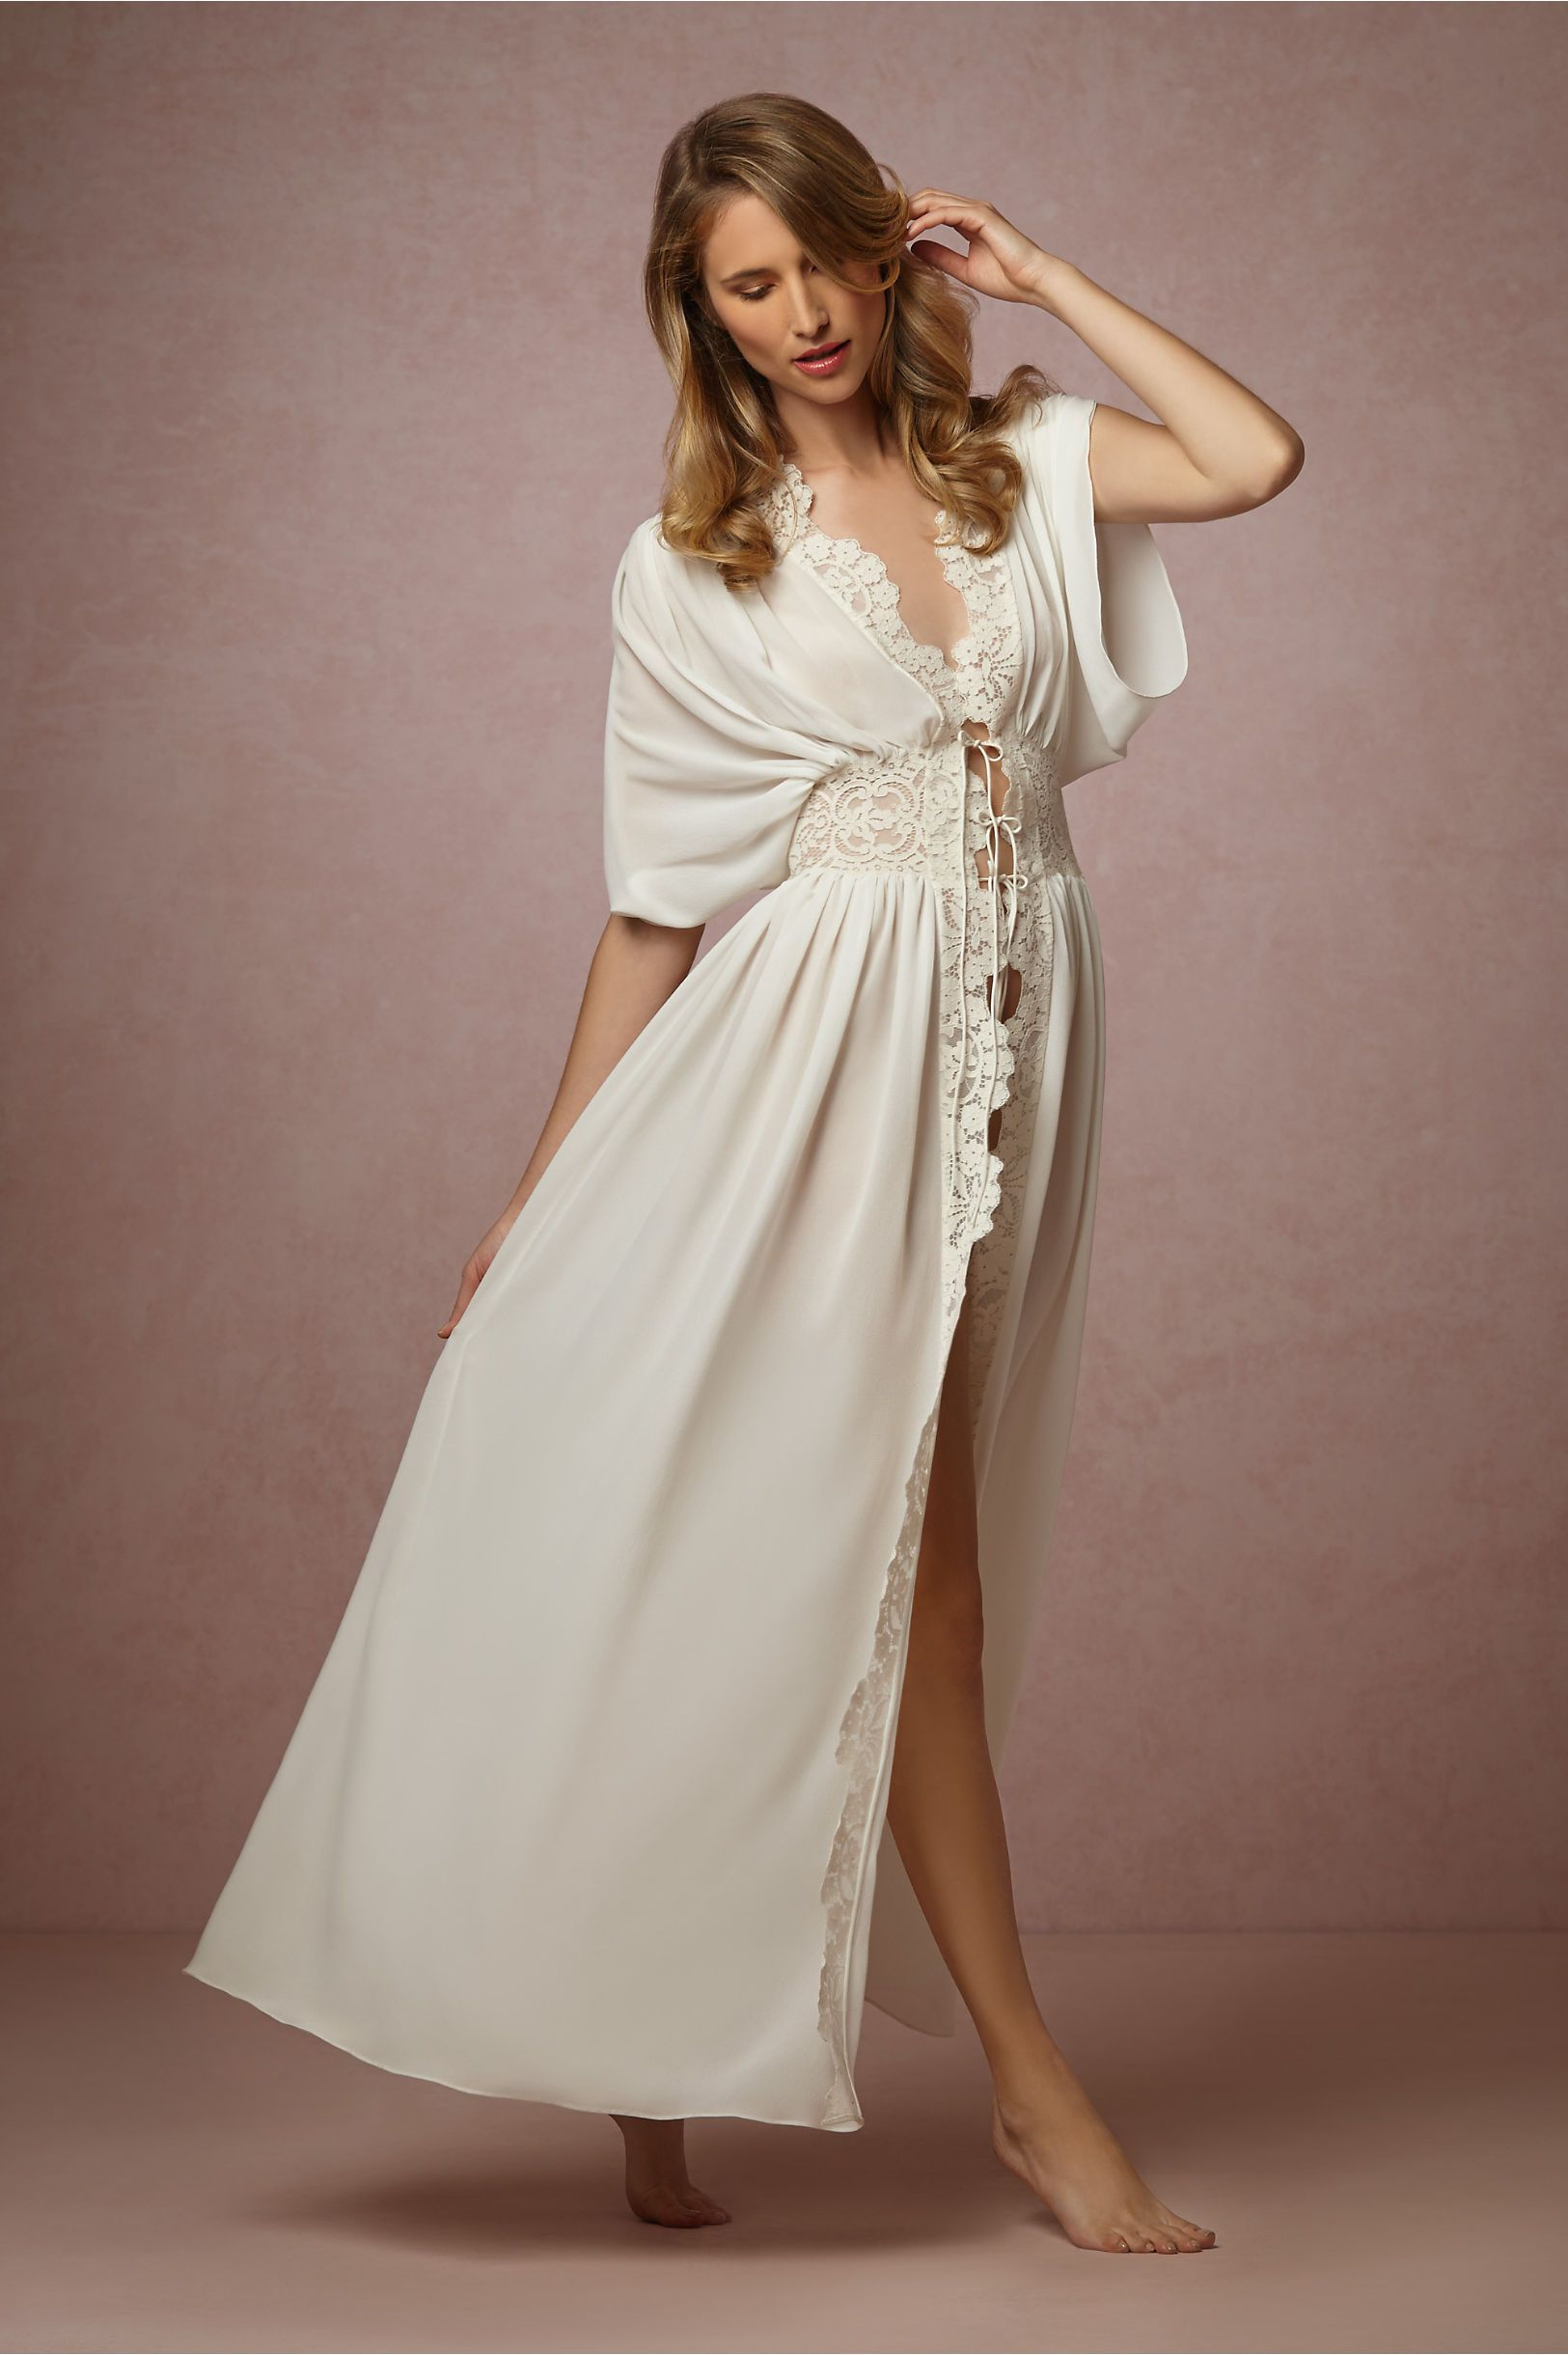 Undergarments for lace wedding dress  Lila Lace Robe in Lingerie Chemises u Robes at BHLDNHoneymoon